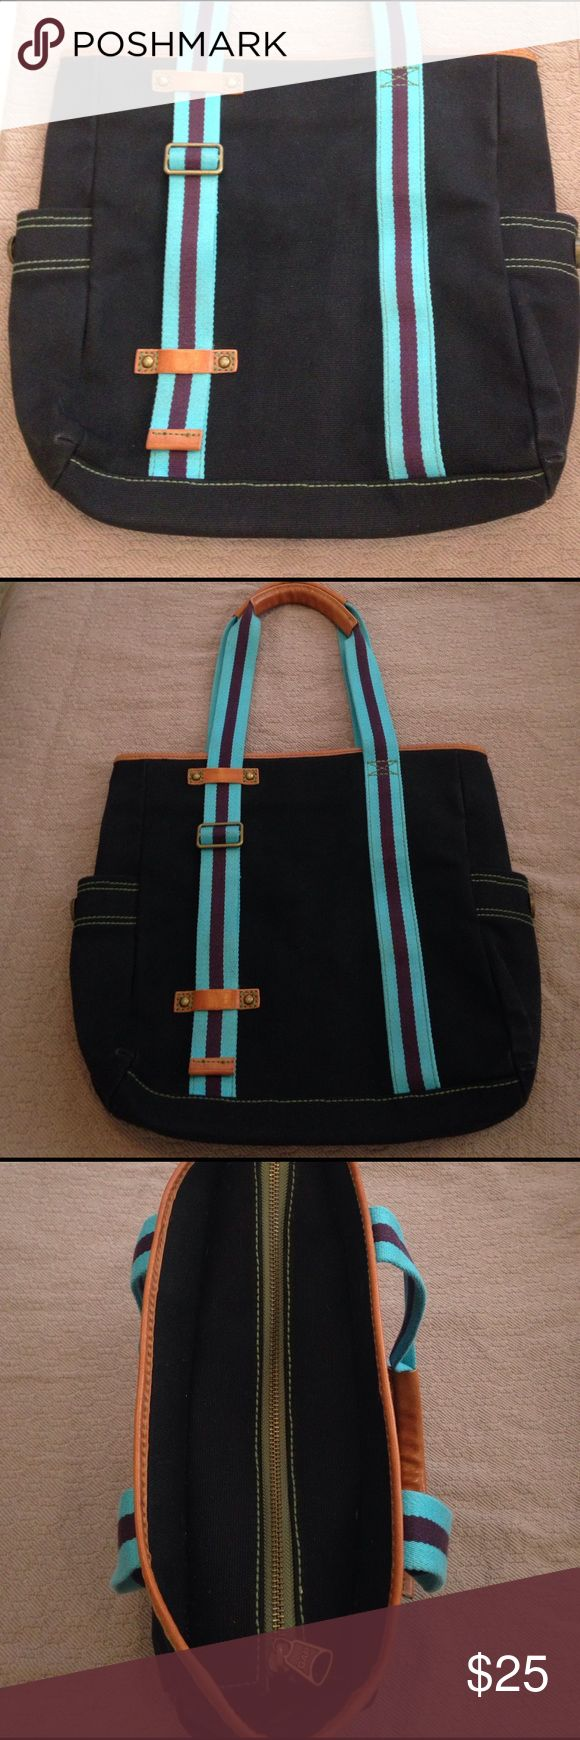 "Gap canvas and leather tote This Gap black canvas tote is a part of the 1969 collection. It is a large bag with two side pockets and a few pockets inside including a zipper pocket. This bag is in good shape and there is no tears or stains. The straps are adjustable. Width is 13.5"" and in length 14"". Gap Bags Totes"